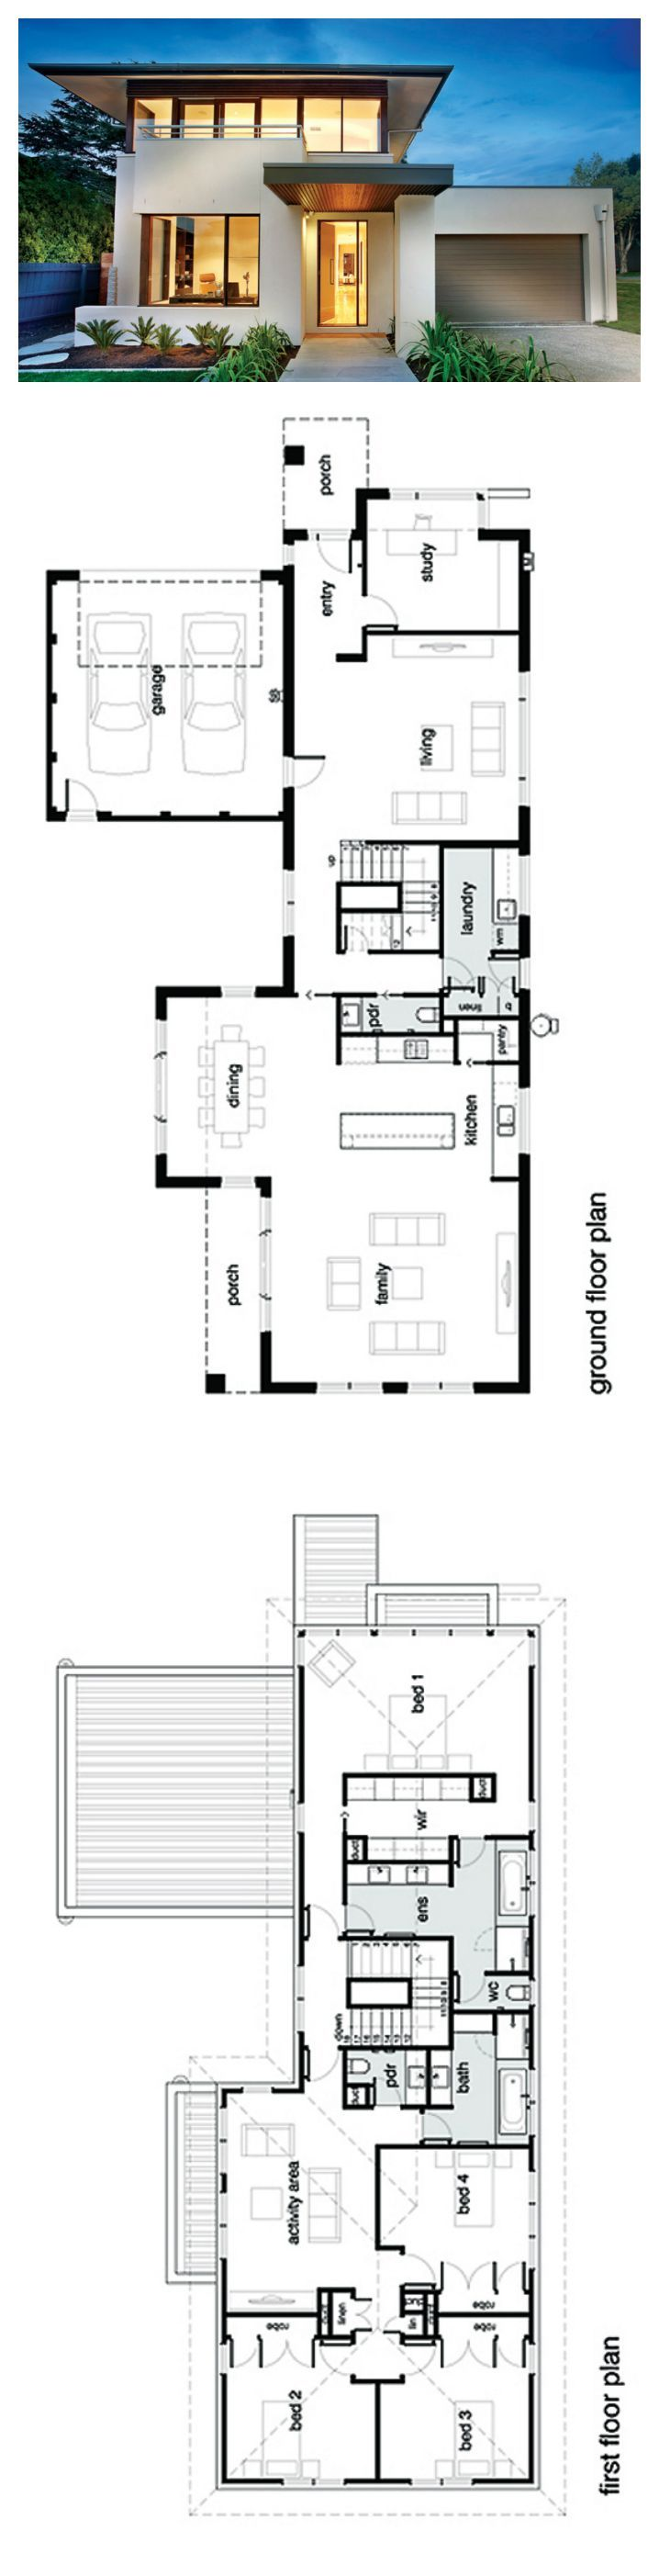 Best 25 modern house plans ideas on pinterest for Modern home design plans